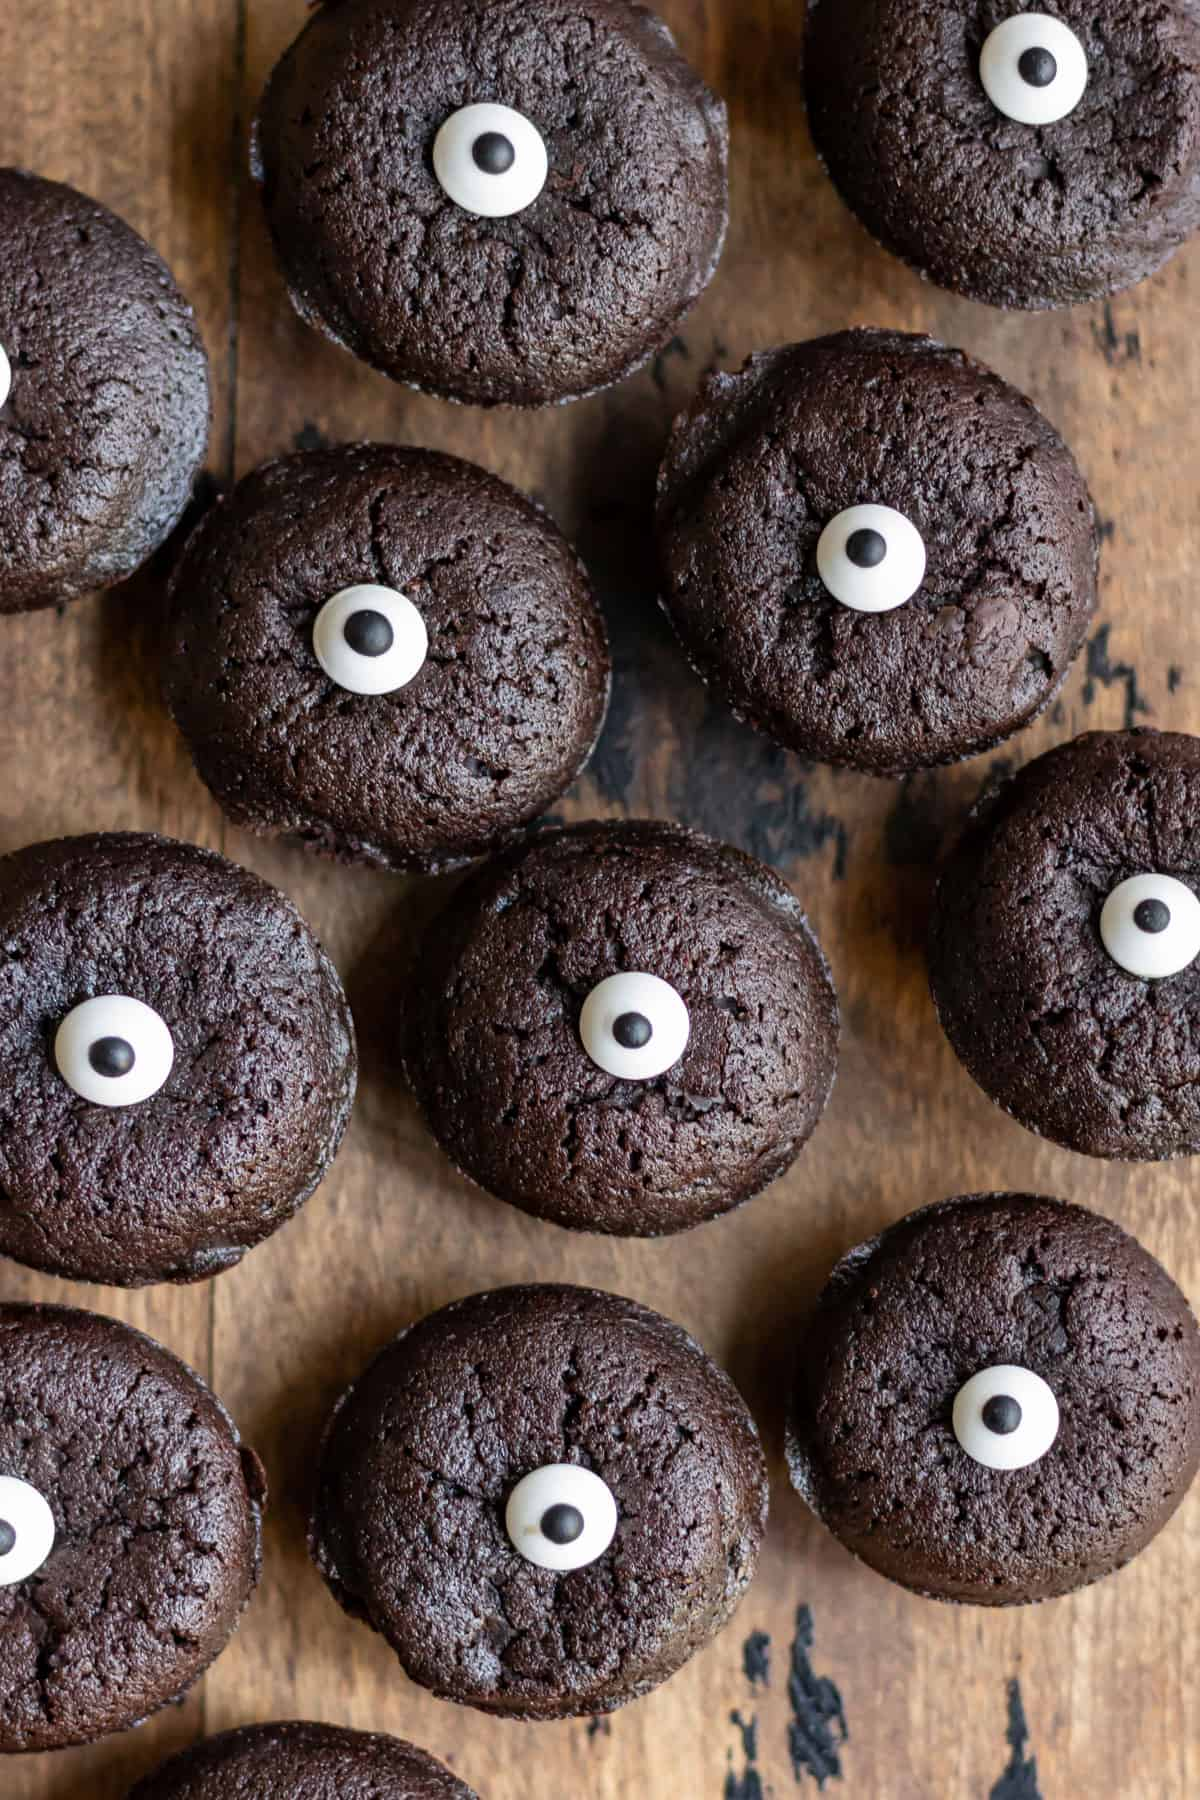 Rows of candy eye-topped brownie bites.